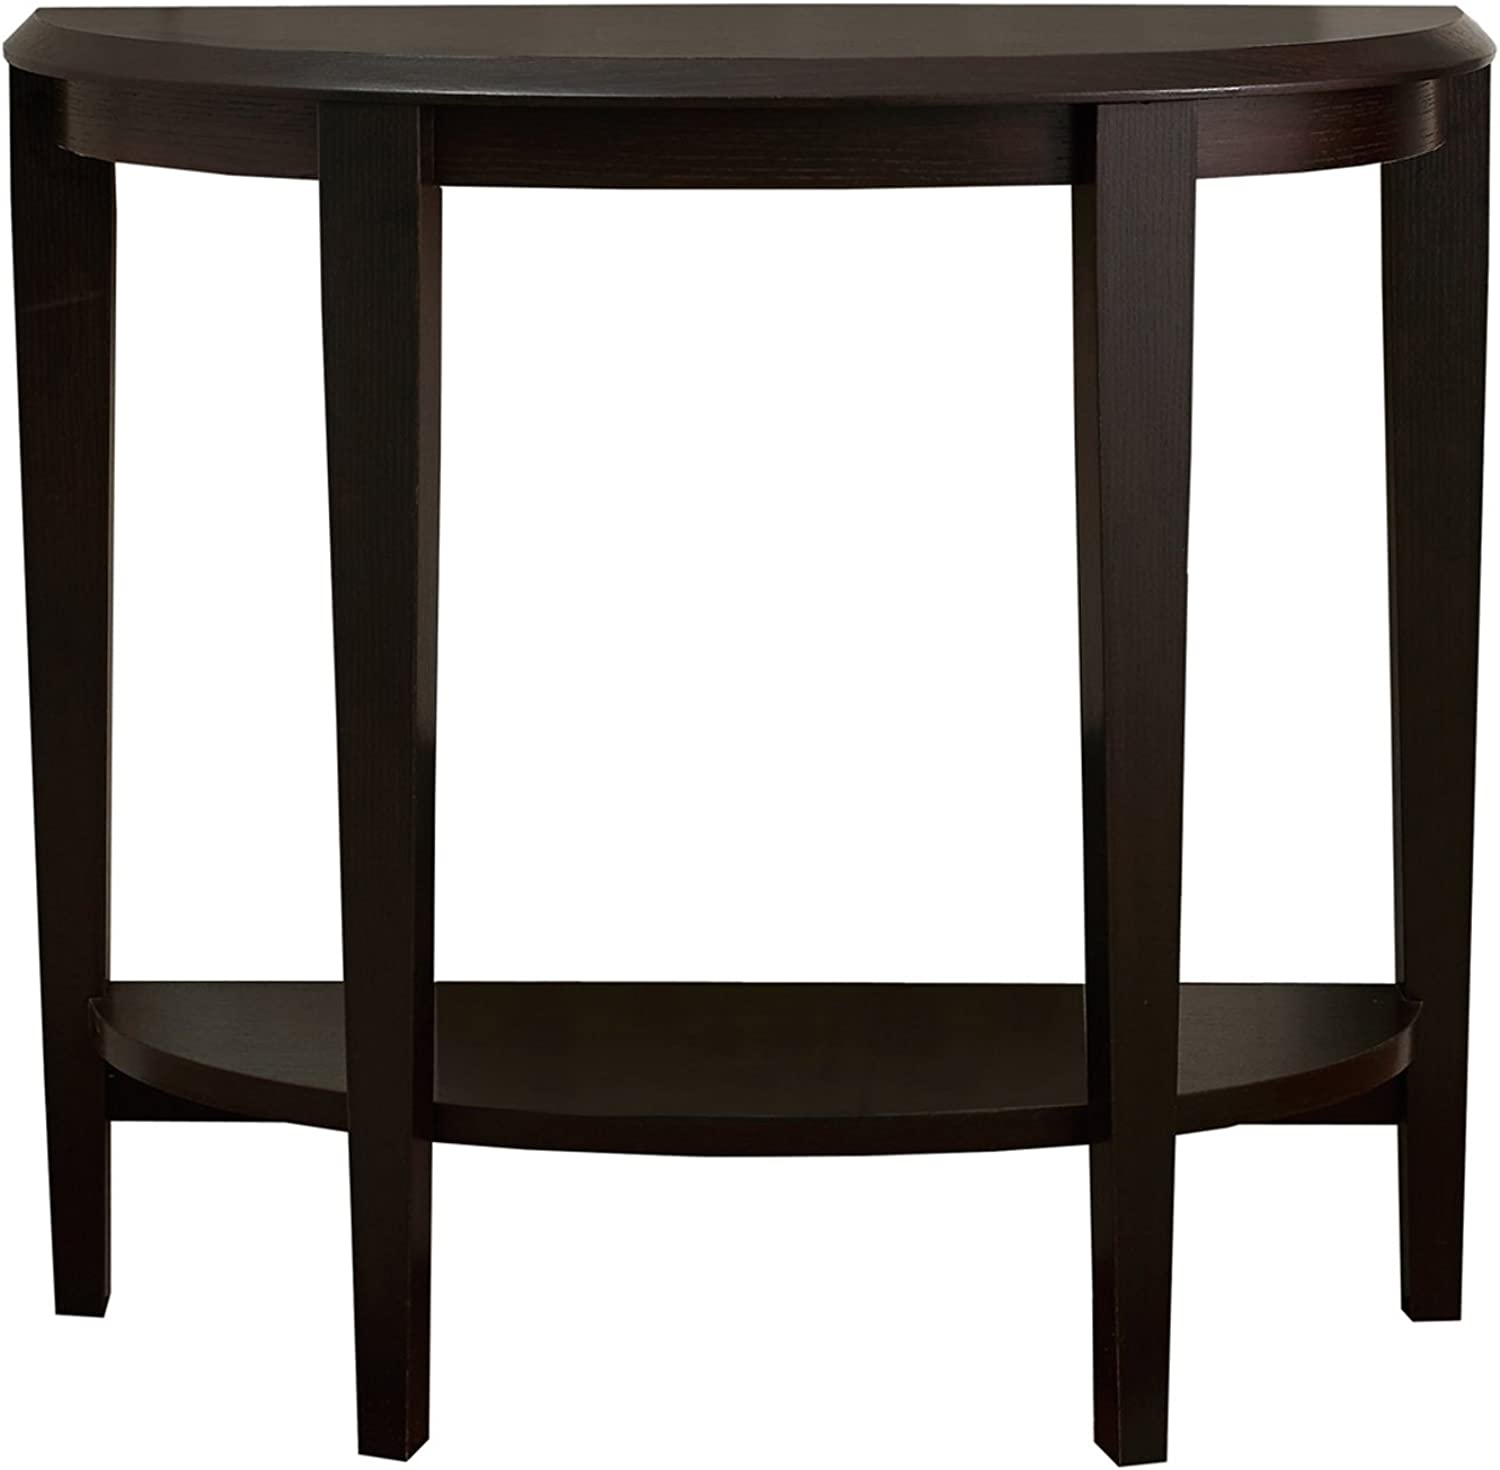 Monarch Specialties I 2450 Cappuccino Hall Console Accent Table, 36